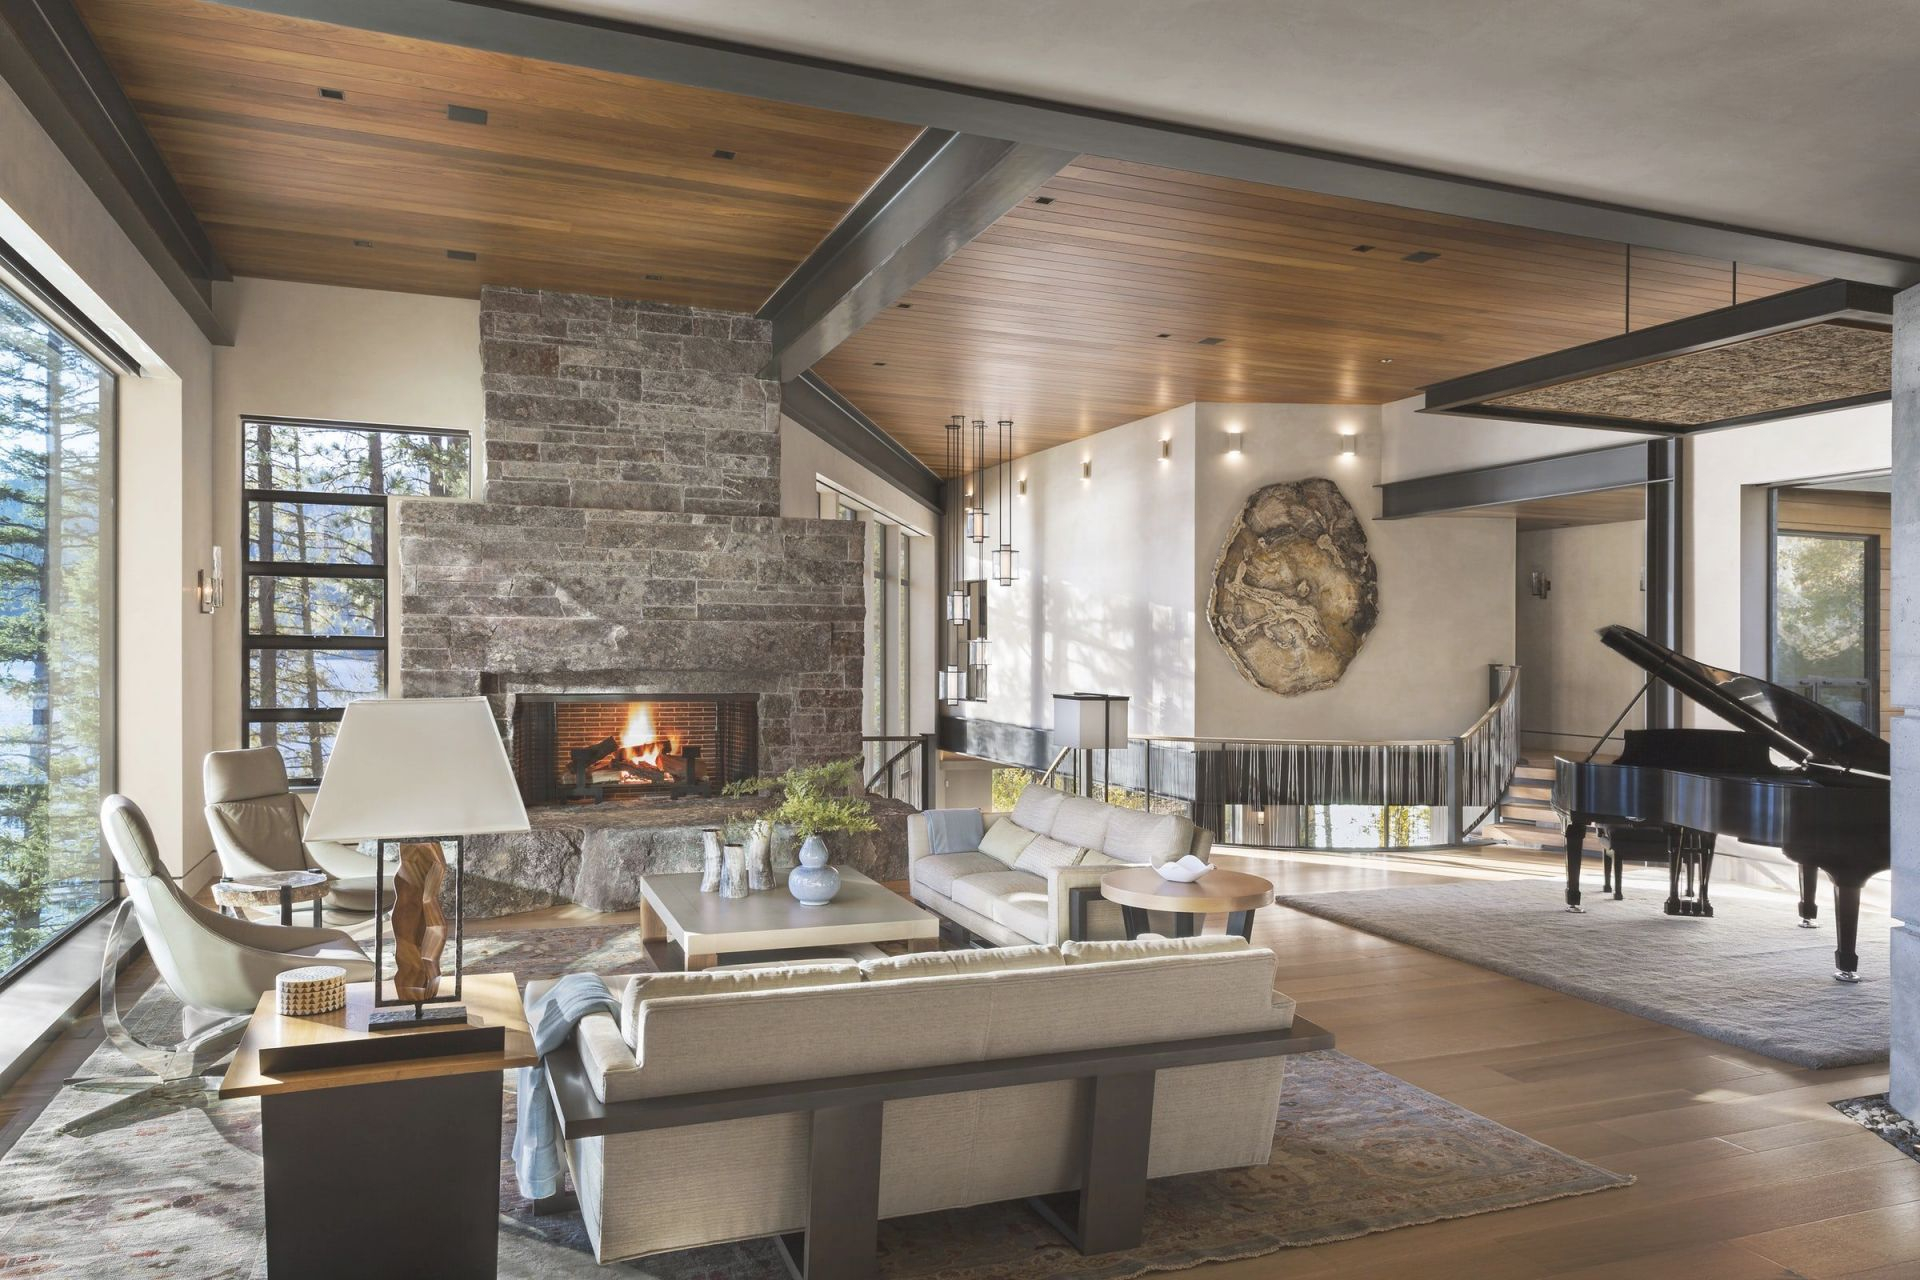 35 Best Rustic Living Room Ideas – Rustic Decor For Living Rooms pertaining to 10+ Unique Gallery Hunting Decor For Living Room